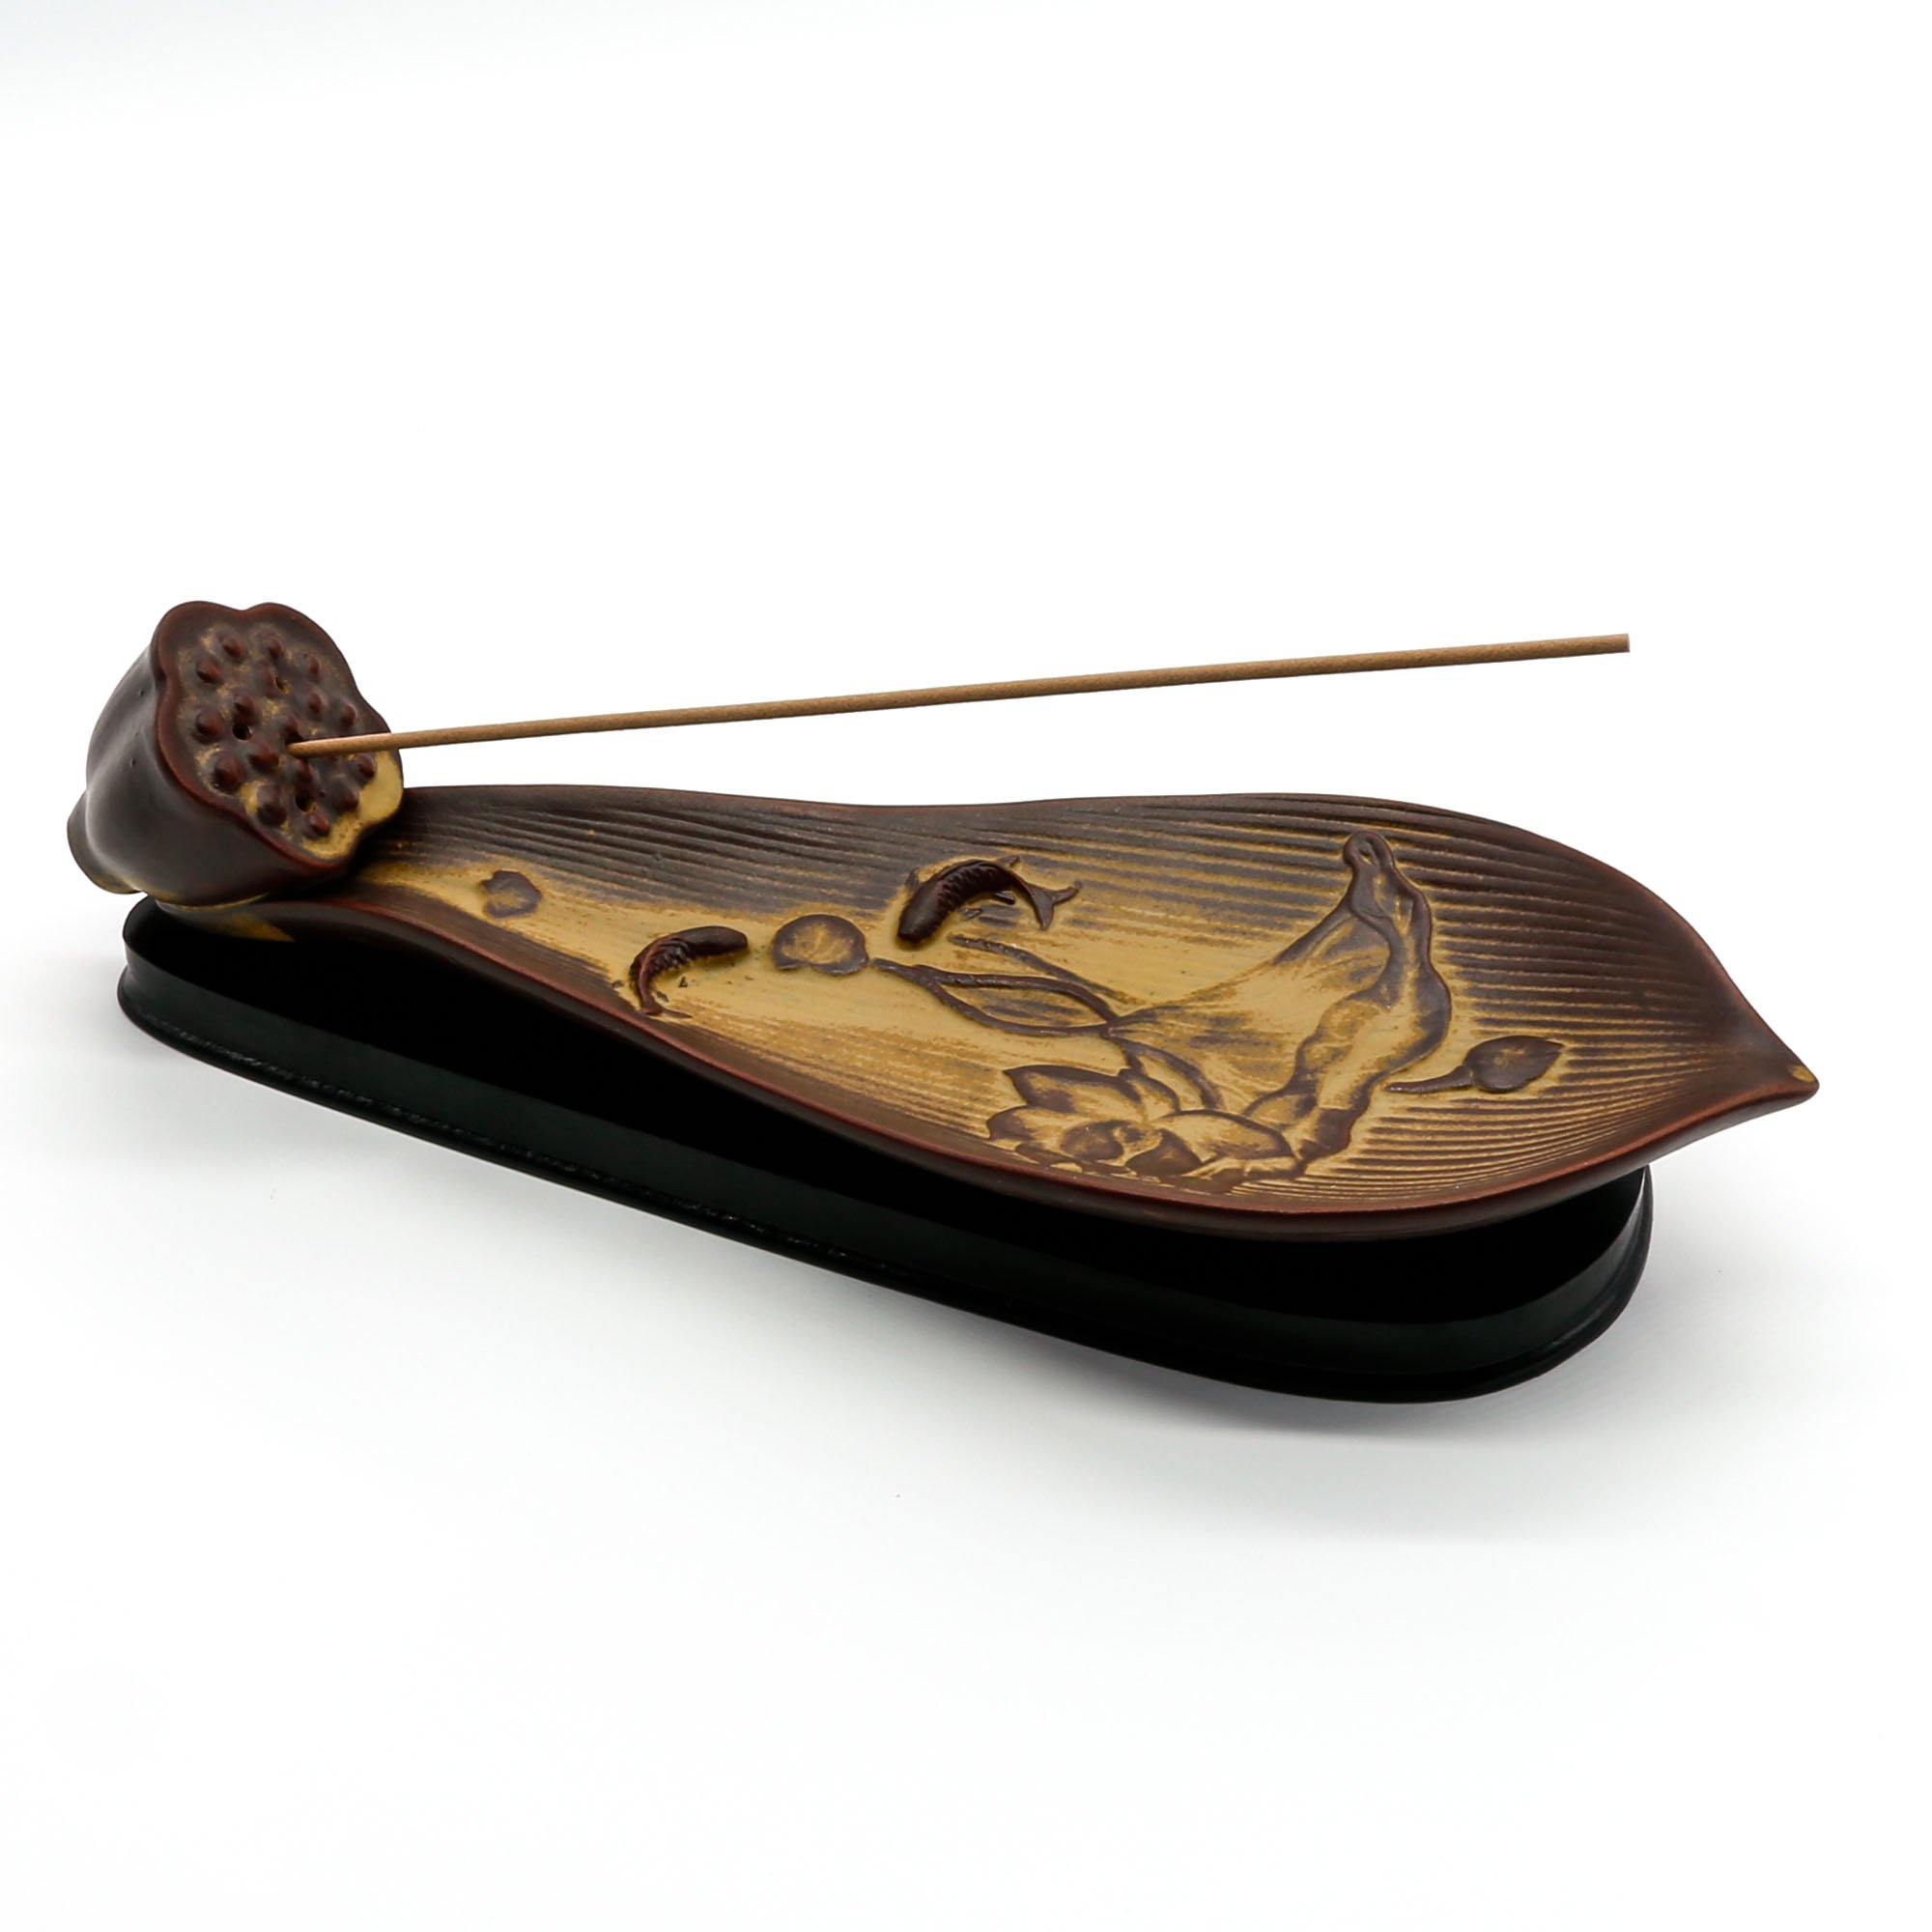 Omonic Vintage Ceramic Lotus Leaf Incense Burner Incense Stick Holder Cone Ash Catcher Tray with Stable Base Aromatherapy Furnace Diffuser Home Decor